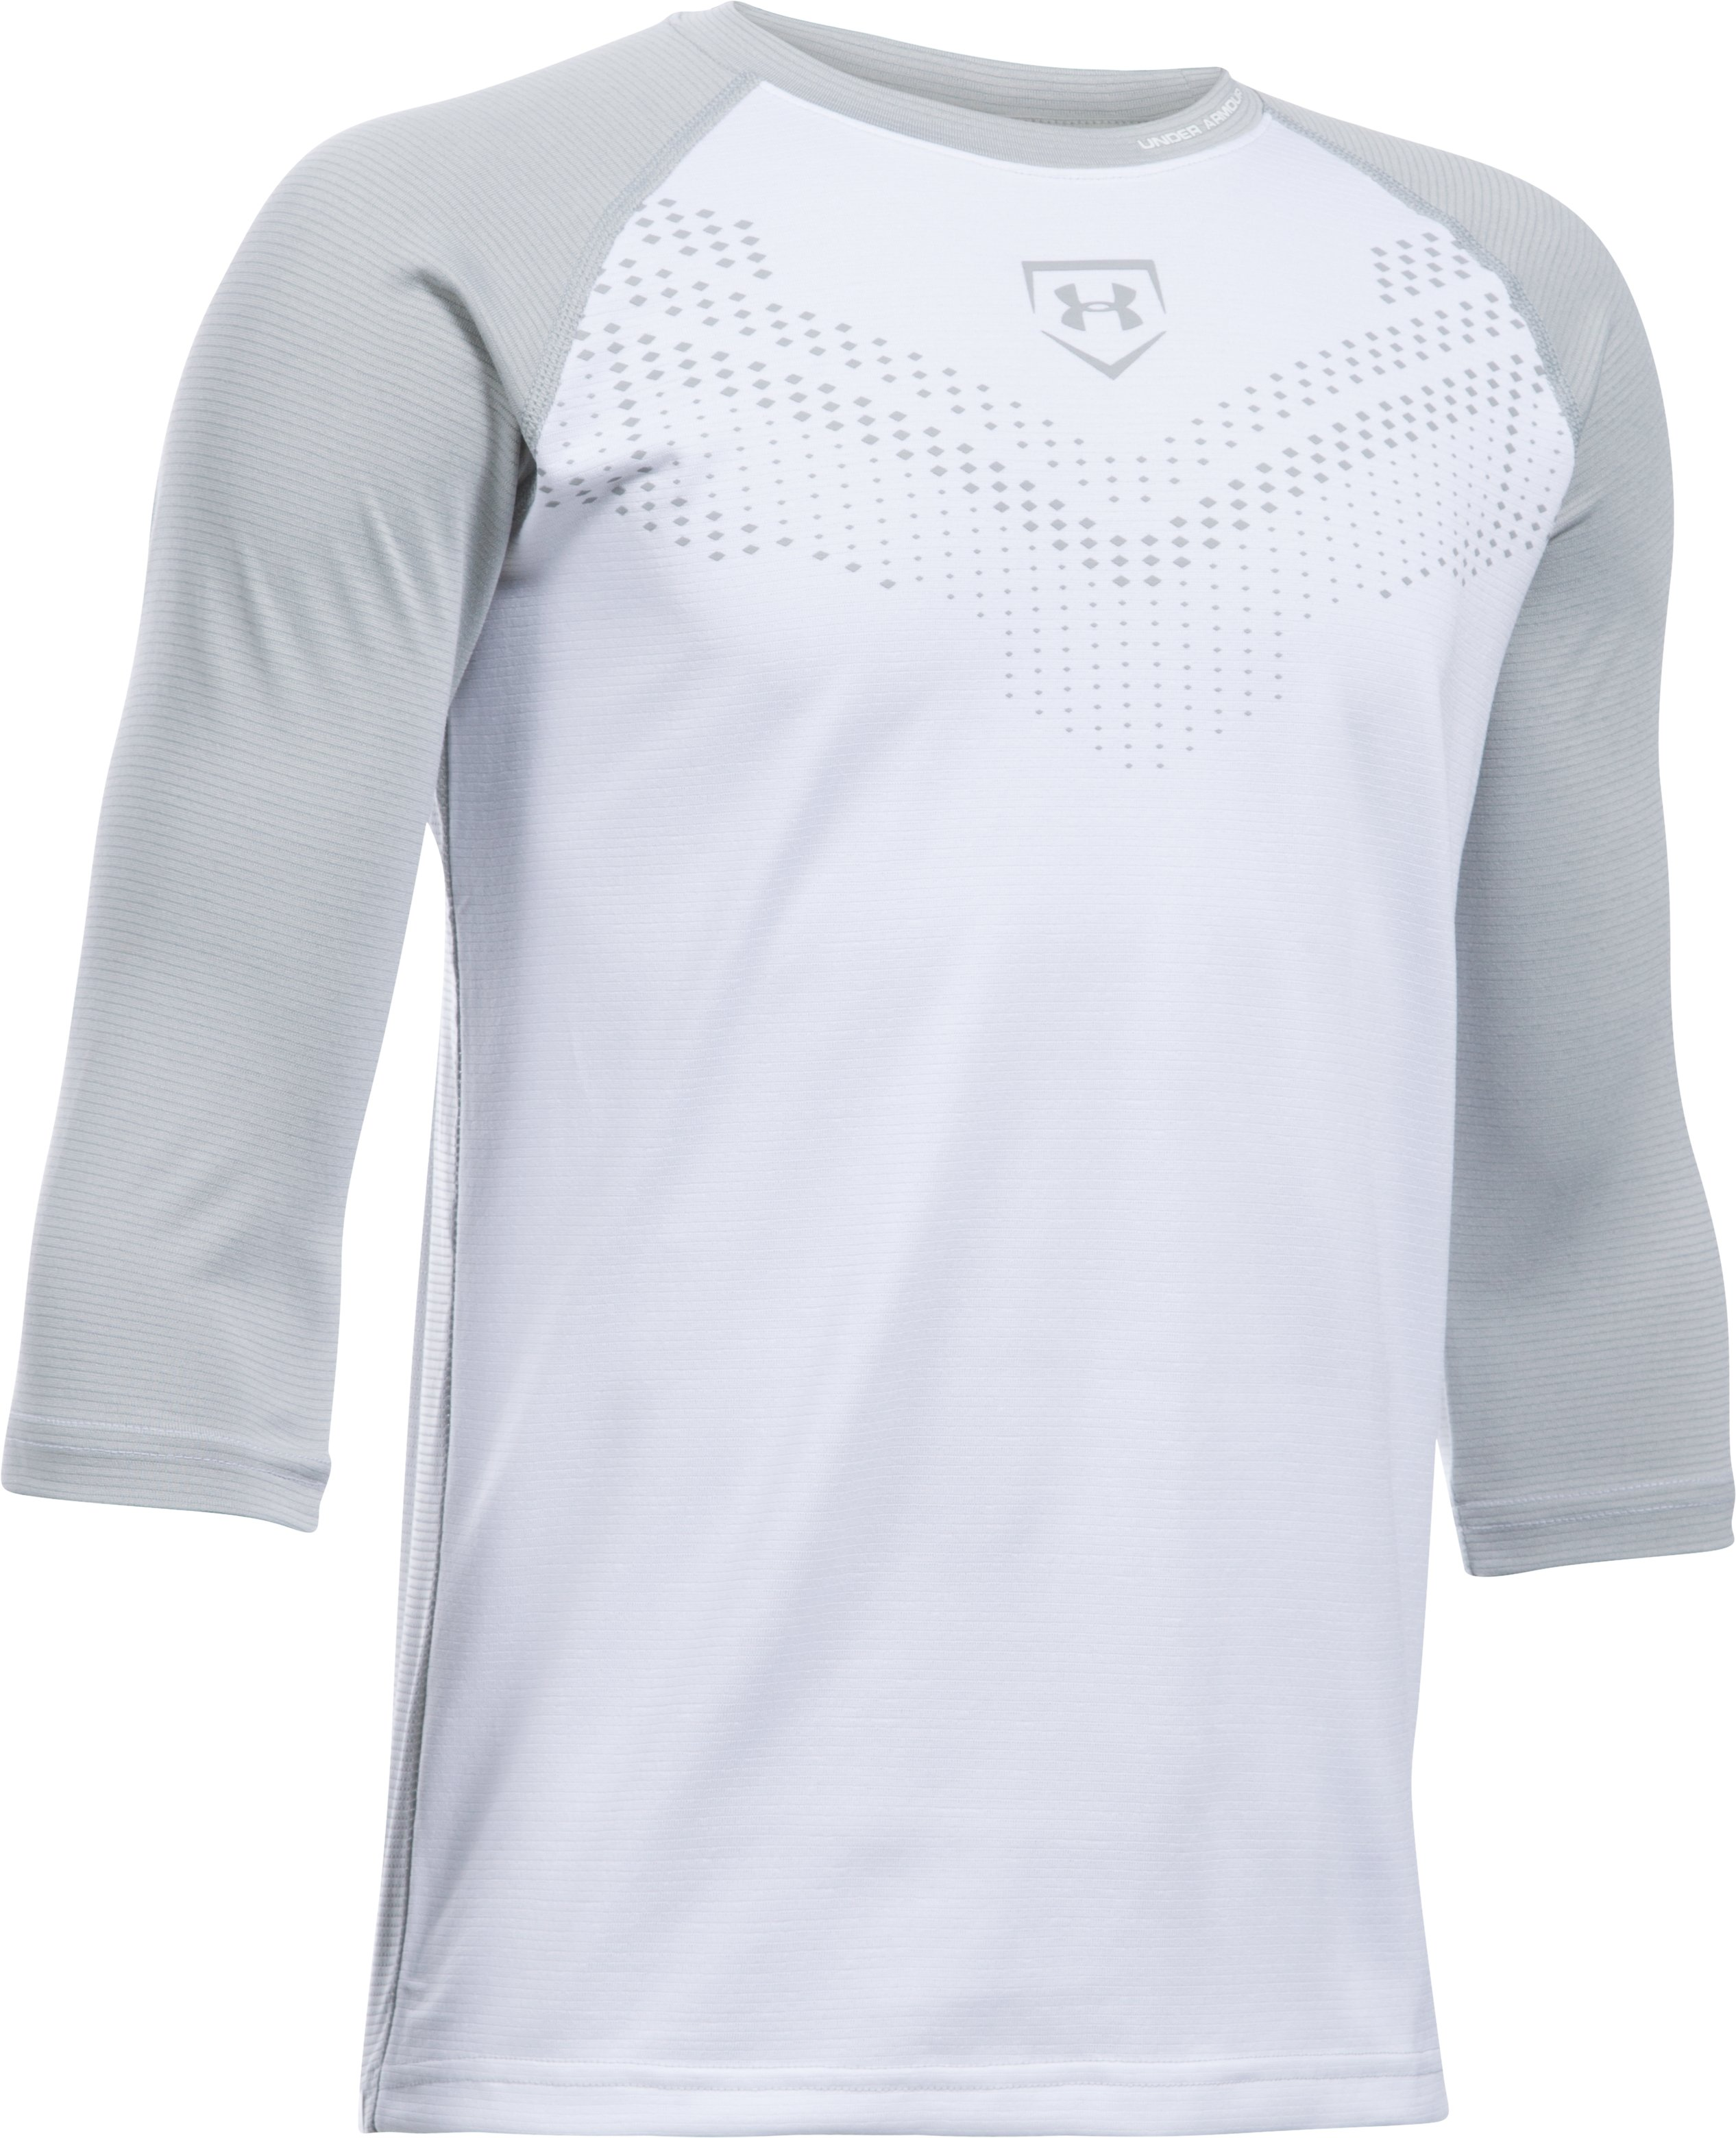 Boys' UA Undeniable ¾ Sleeve T, White